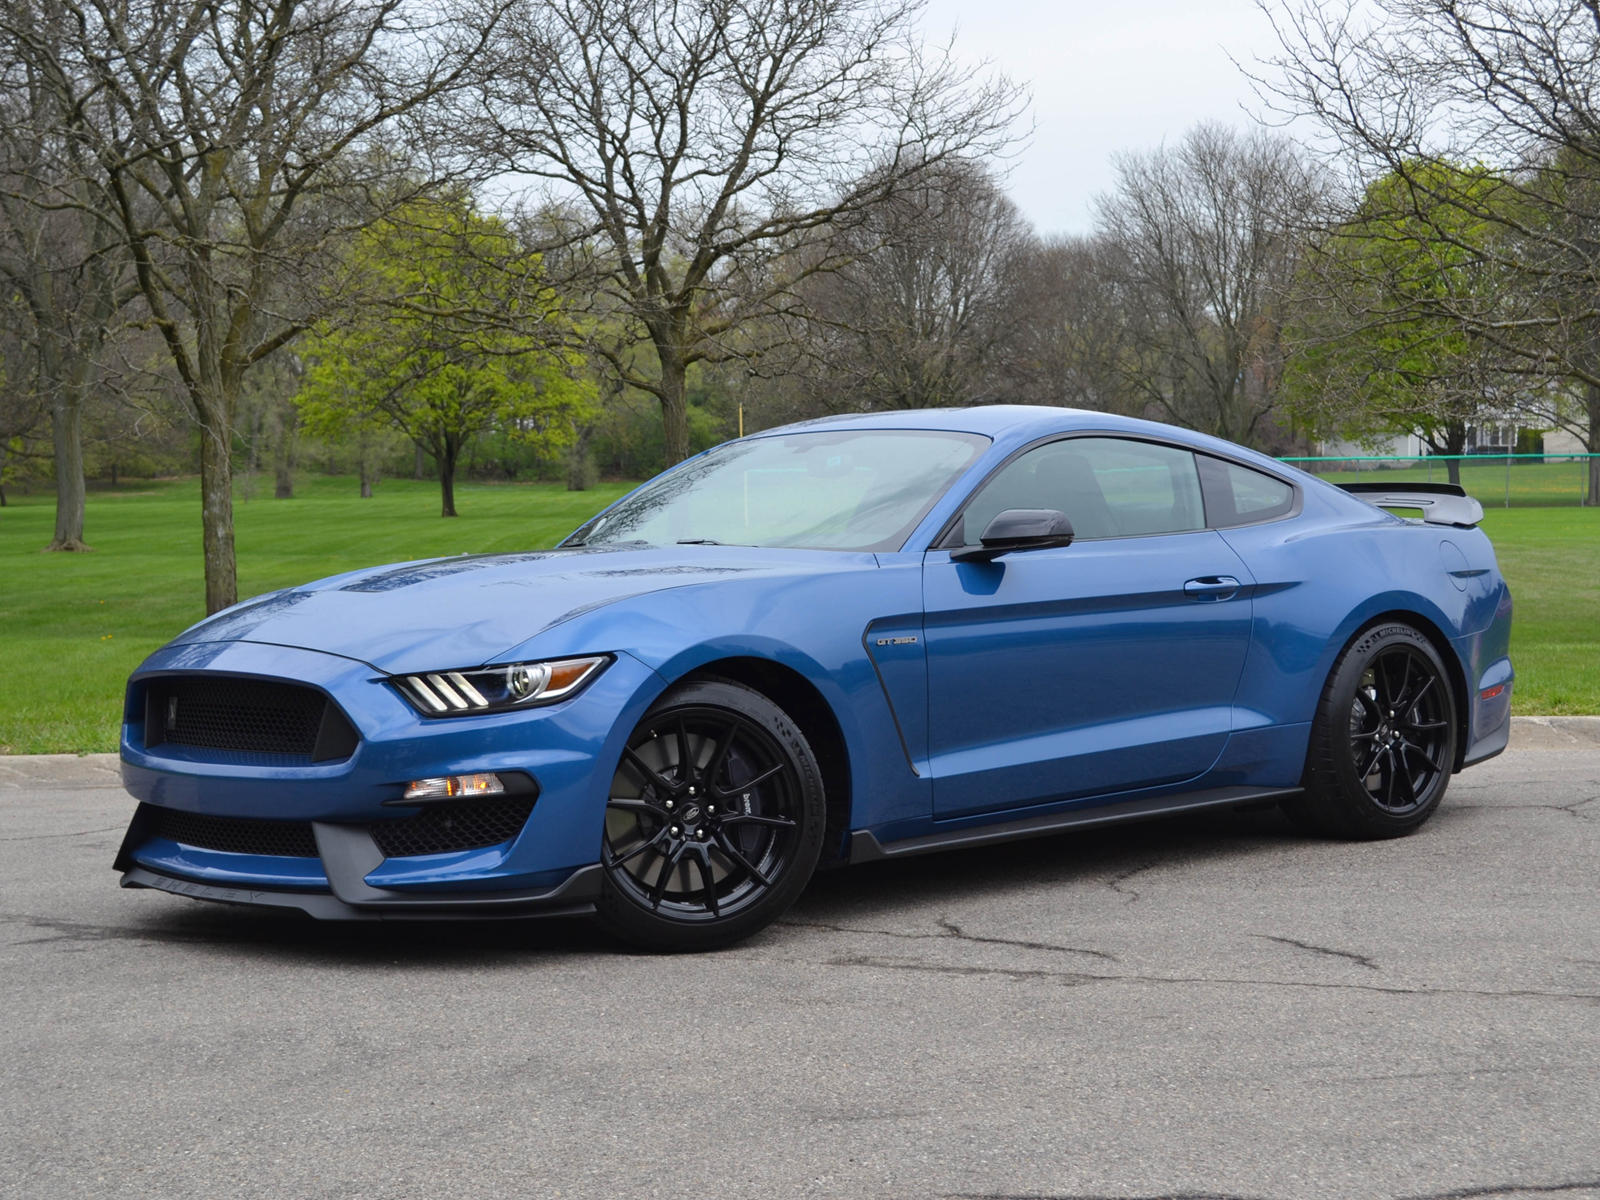 2020 Ford Mustang Shelby GT350: Review, Trims, Specs, Price, New Interior Features, Exterior ...